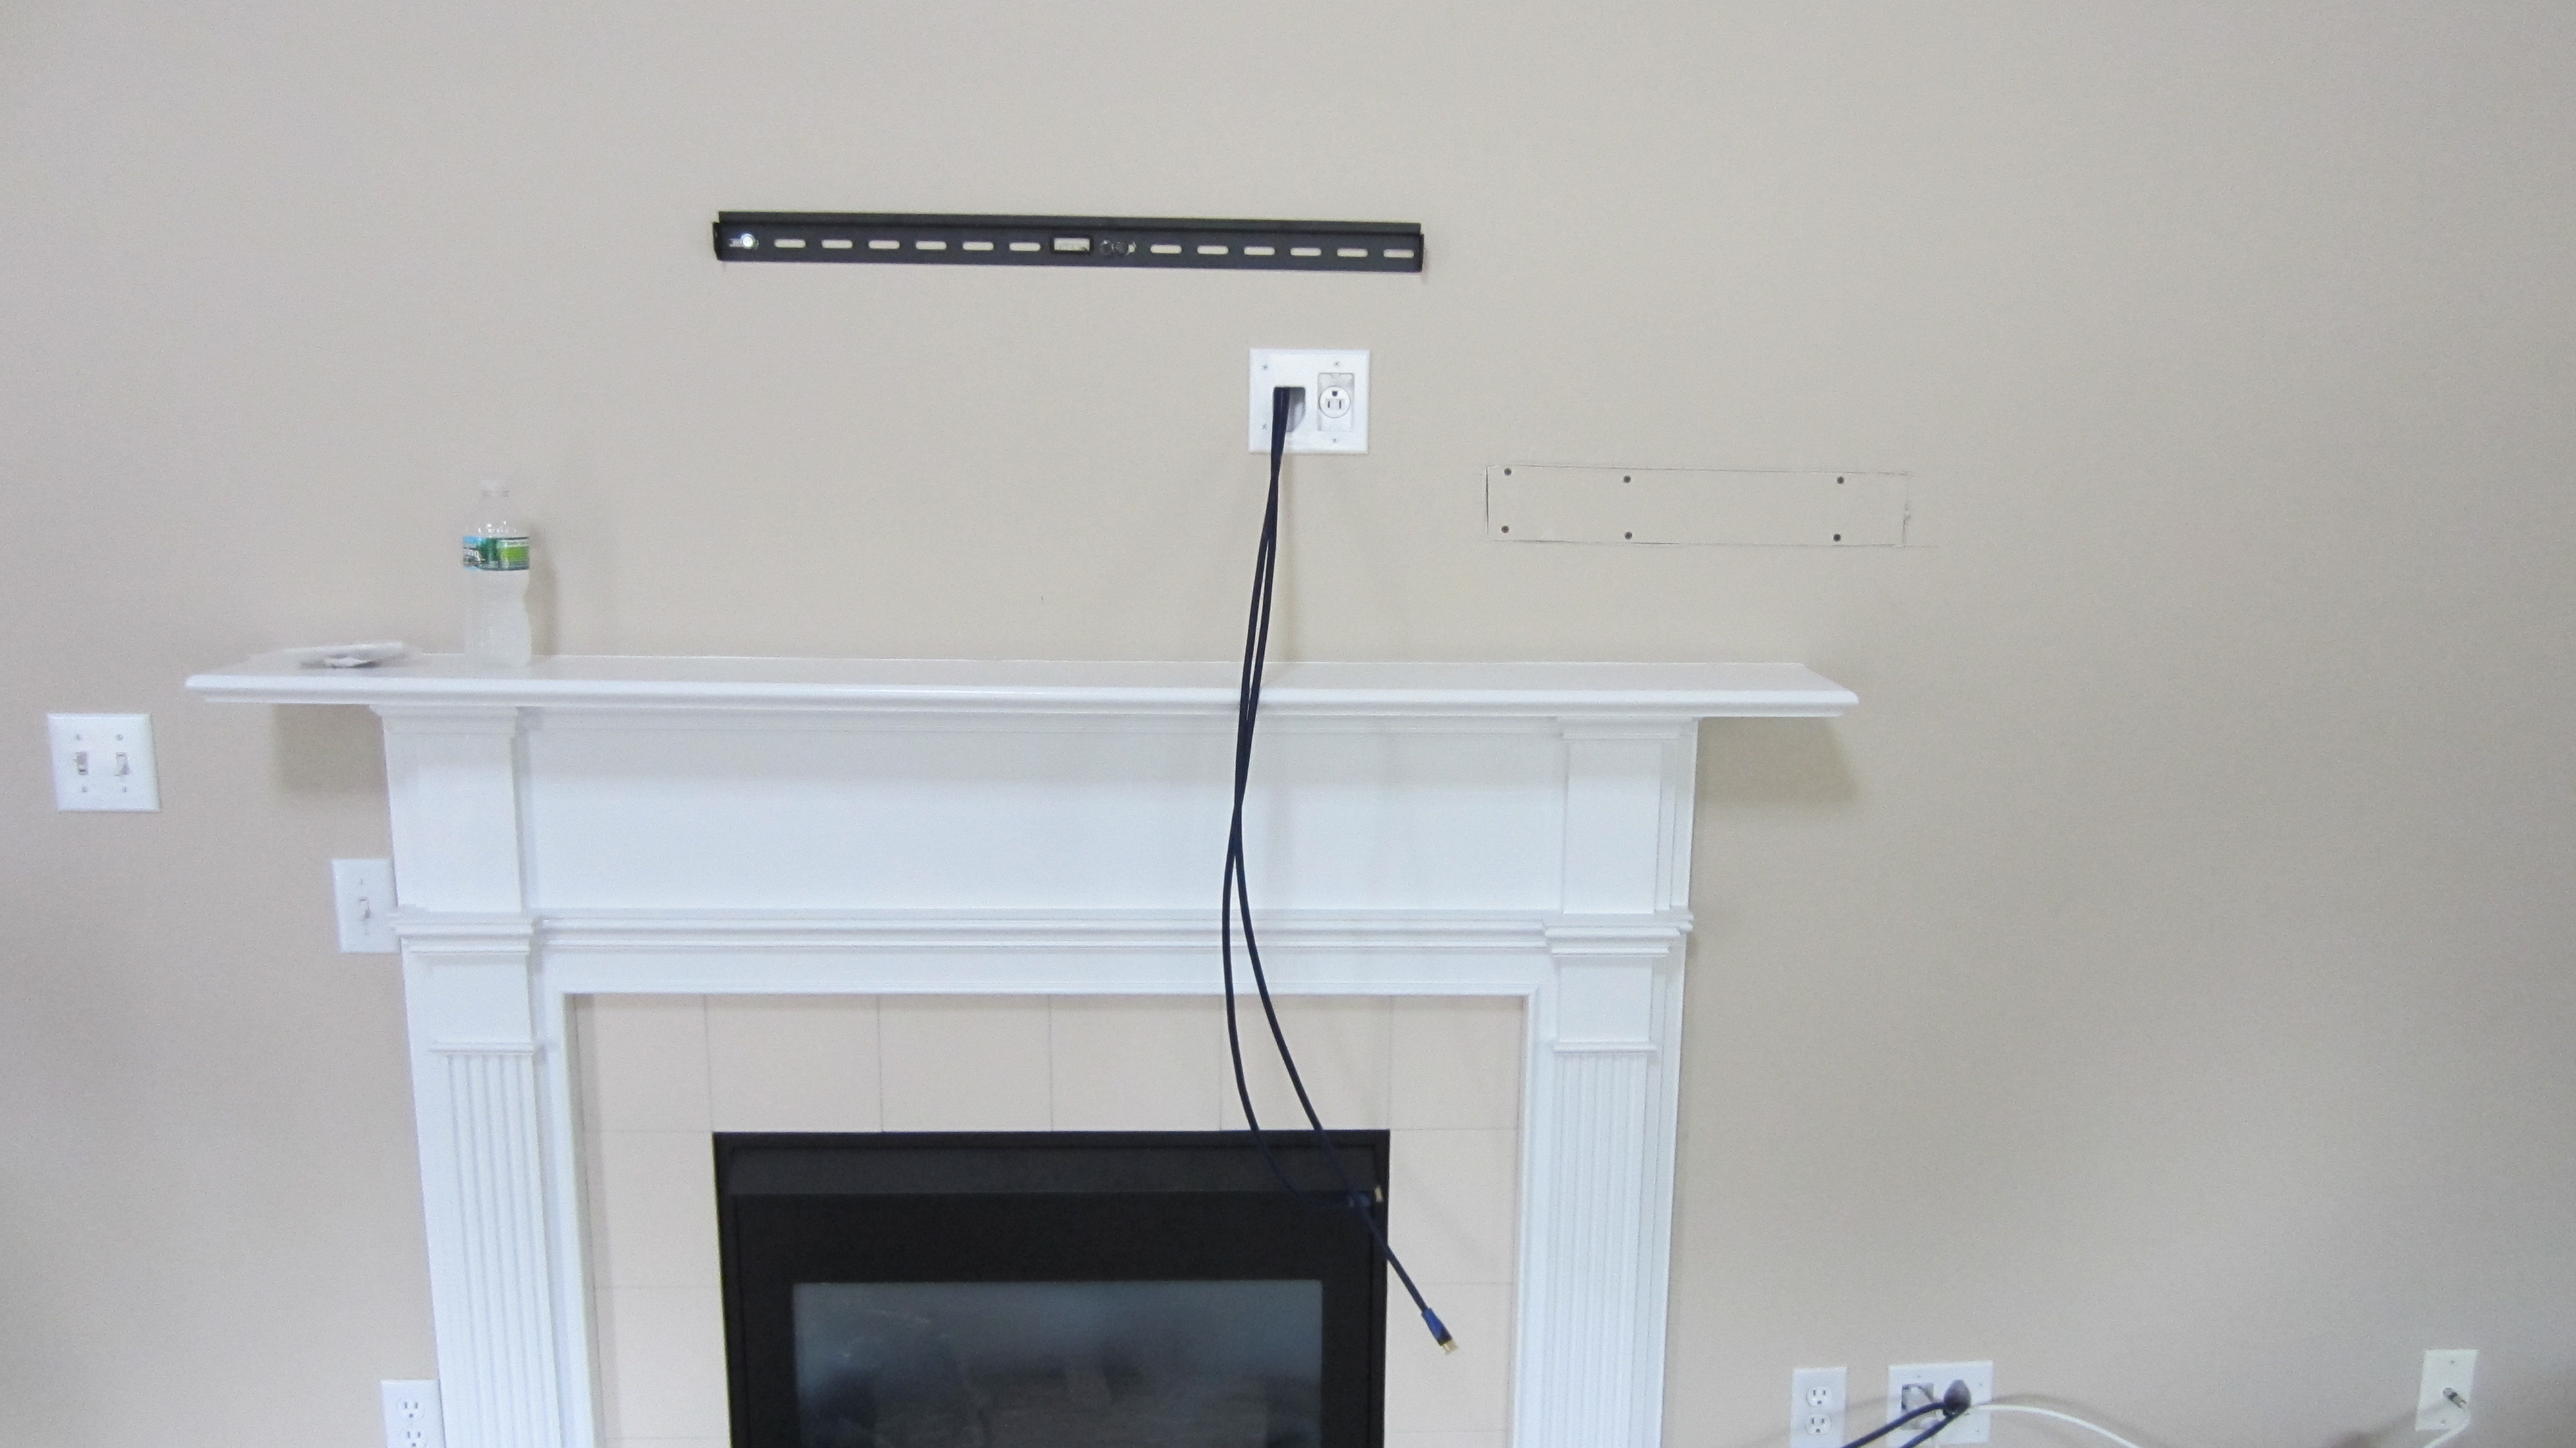 Milford Ct Mount Tv Above Fireplace Home Theater Installation